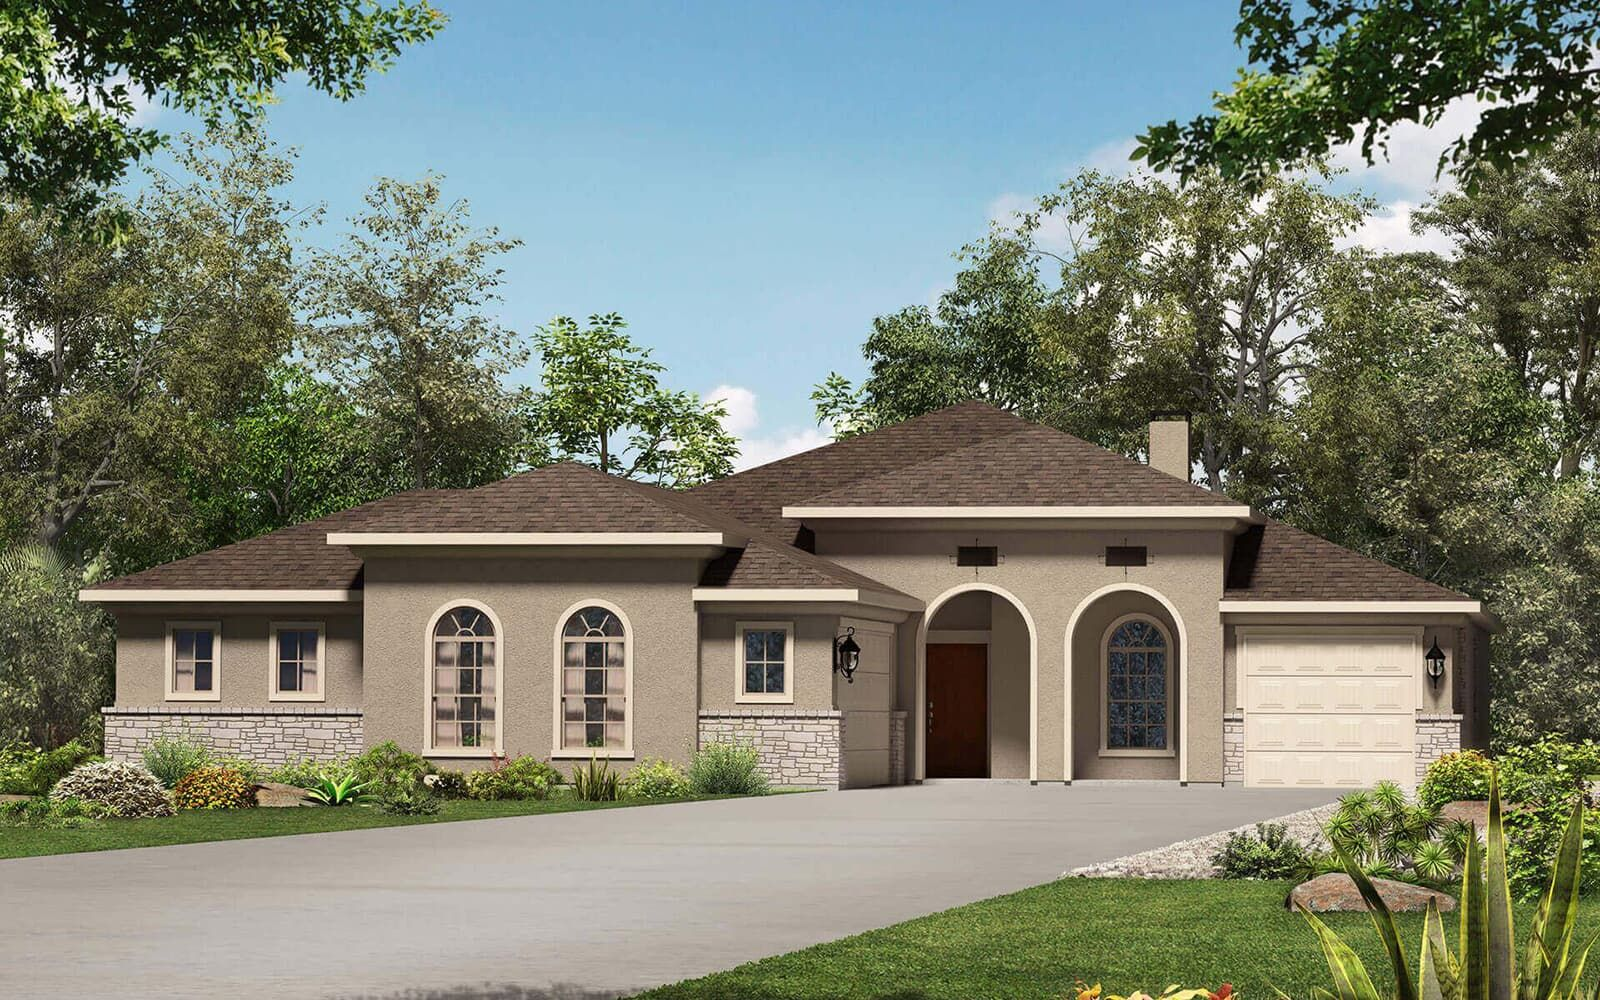 Single Family for Active at Wittenberg 2200 Annassa Court Leander, Texas 78641 United States